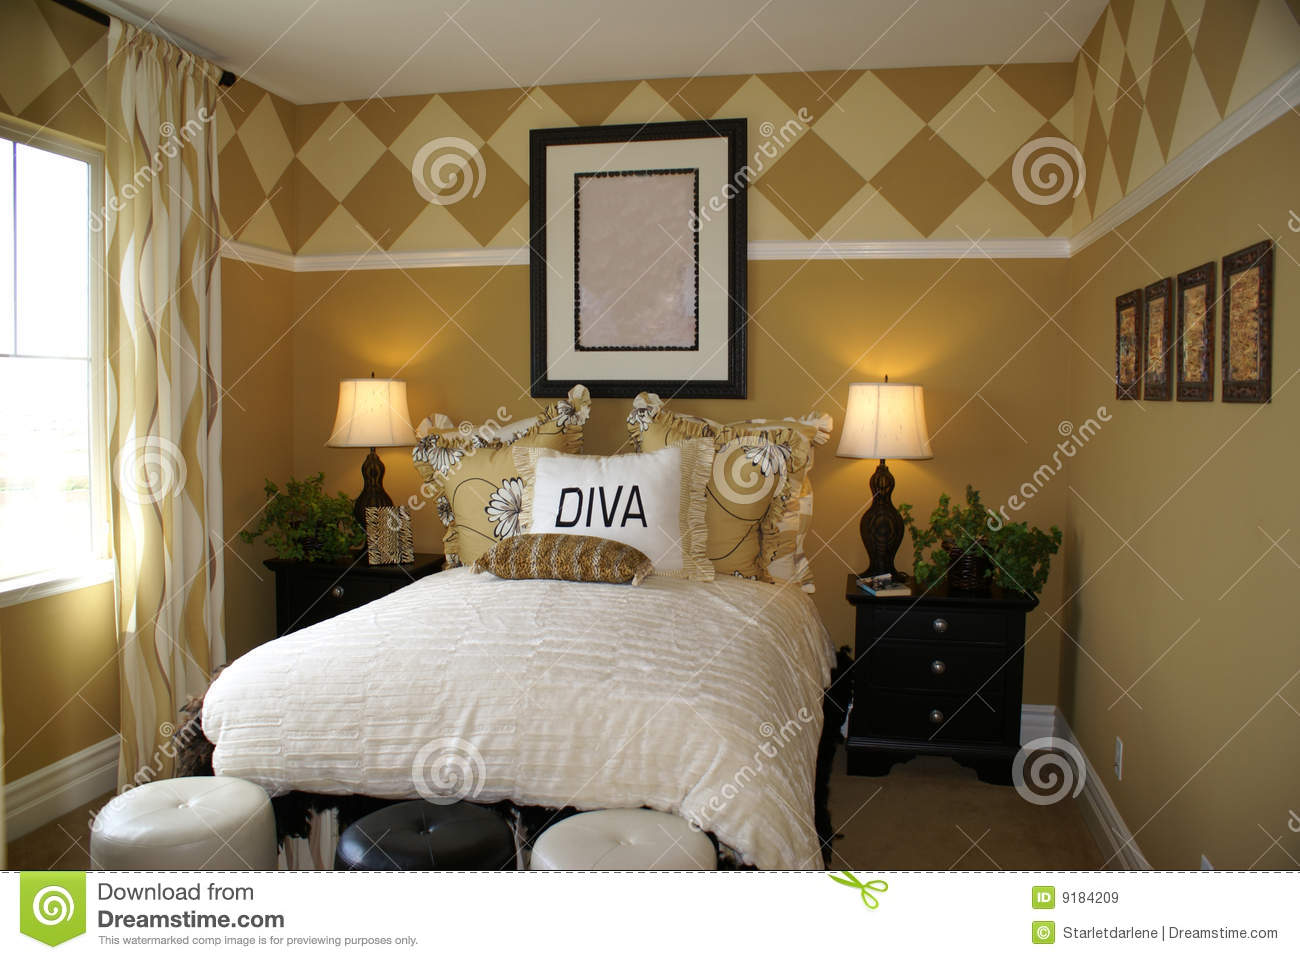 Diva Bedroom stock image Image of white decorater